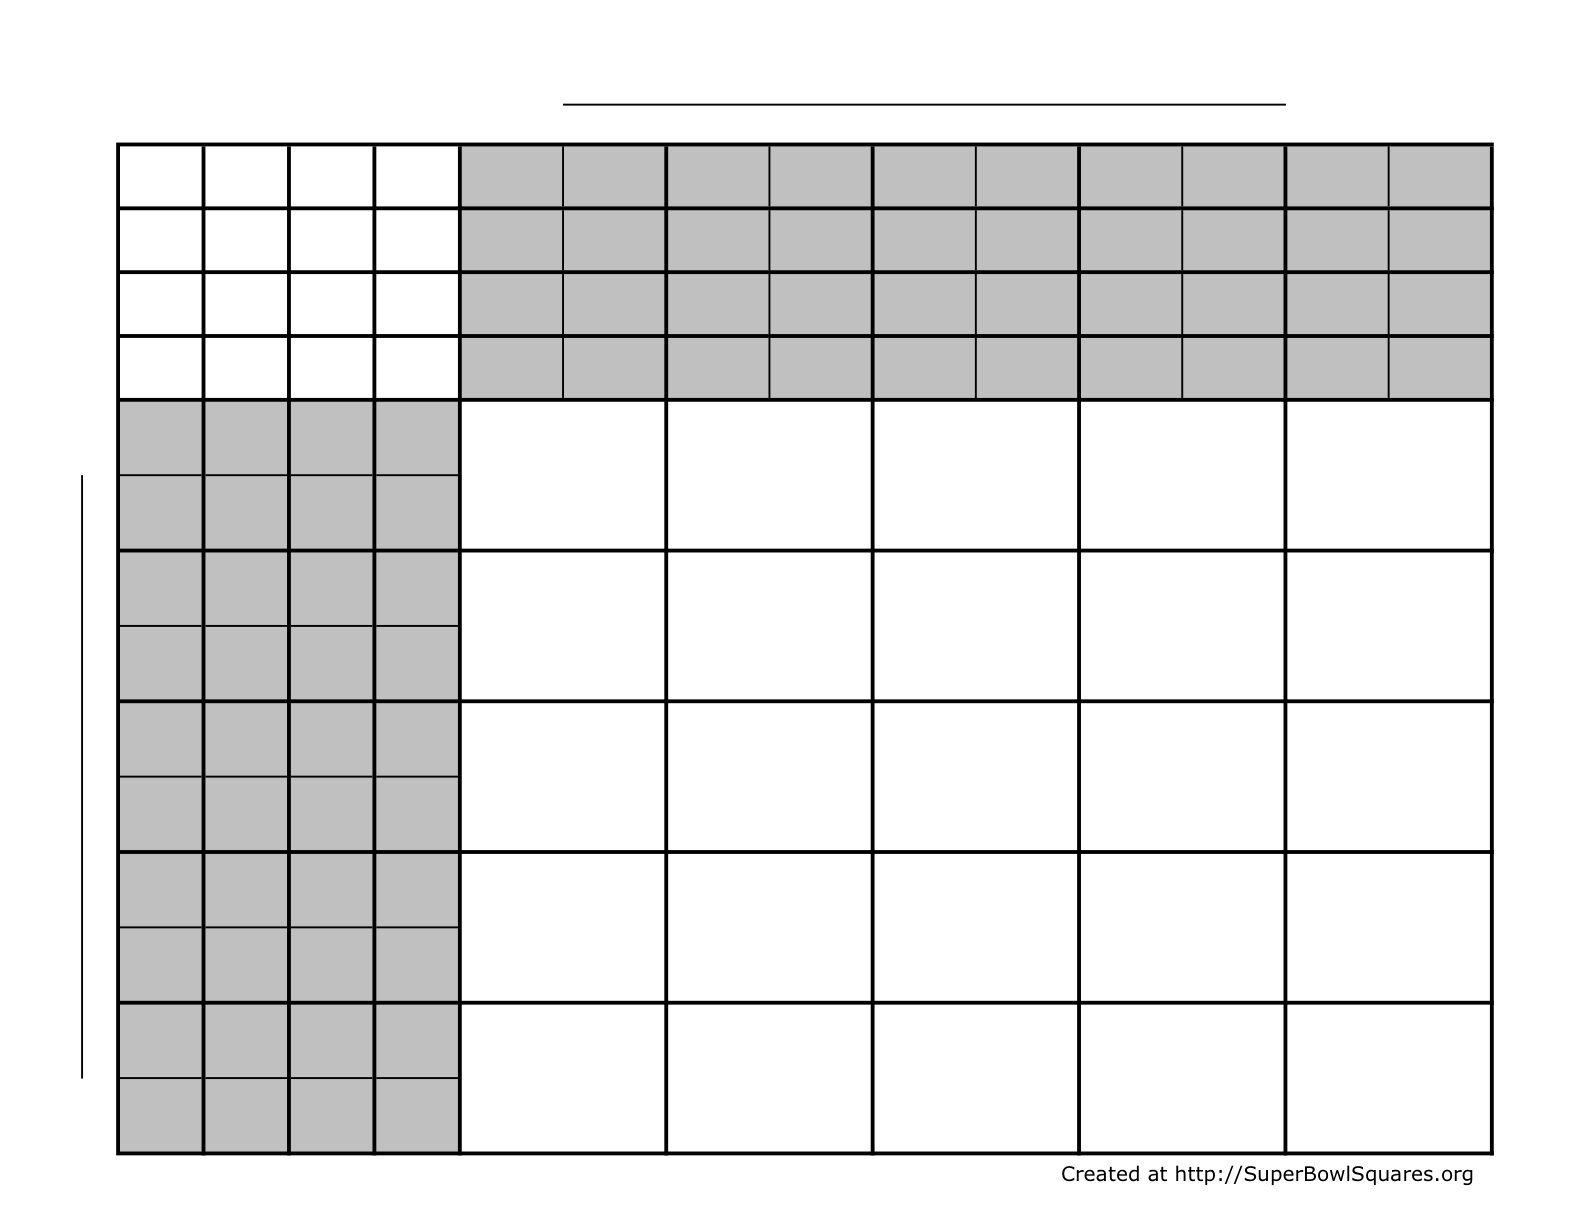 006 Formidable Football Square Template Excel High Def  Printable PoolFull